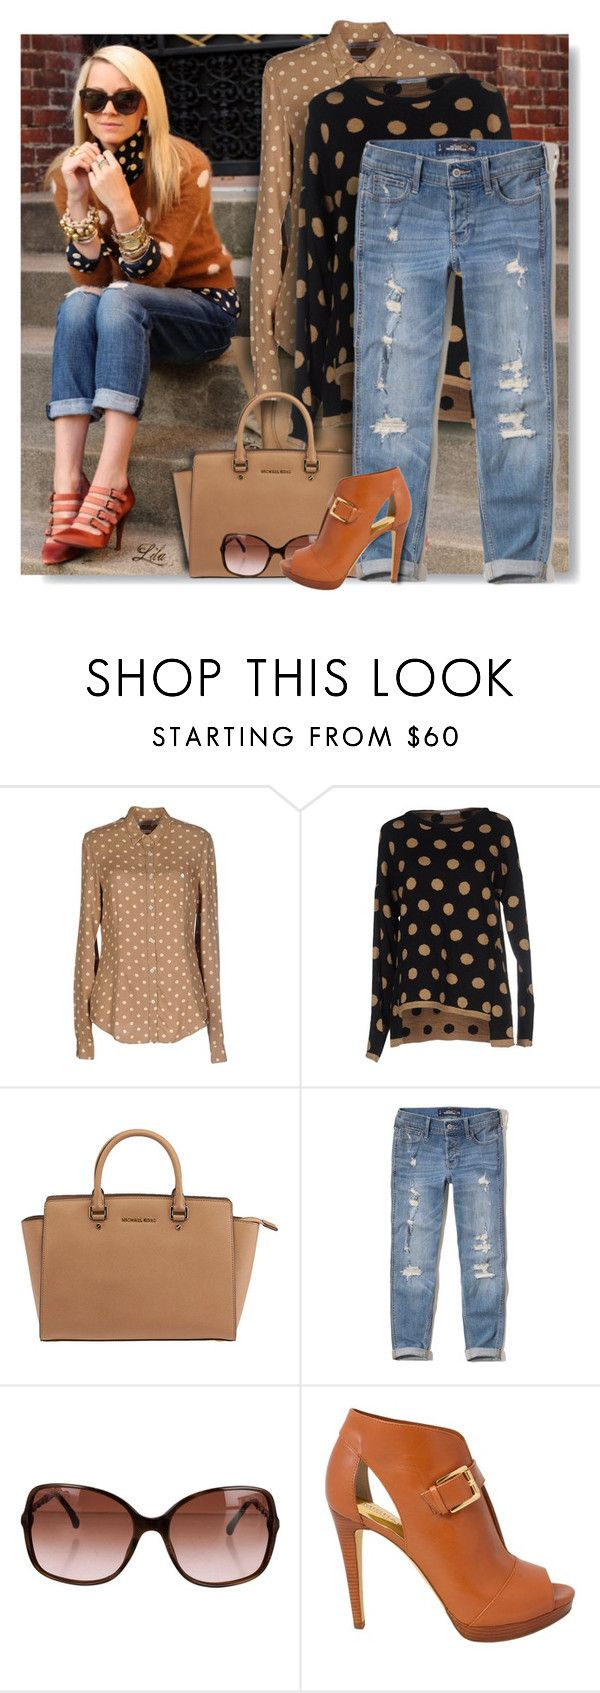 """""""Trends - Polka Dots"""" by breathing-style ❤ liked on Polyvore featuring Department 5, BERNA, Michael Kors, Hollister Co., Chanel and MICHAEL Michael Kors"""